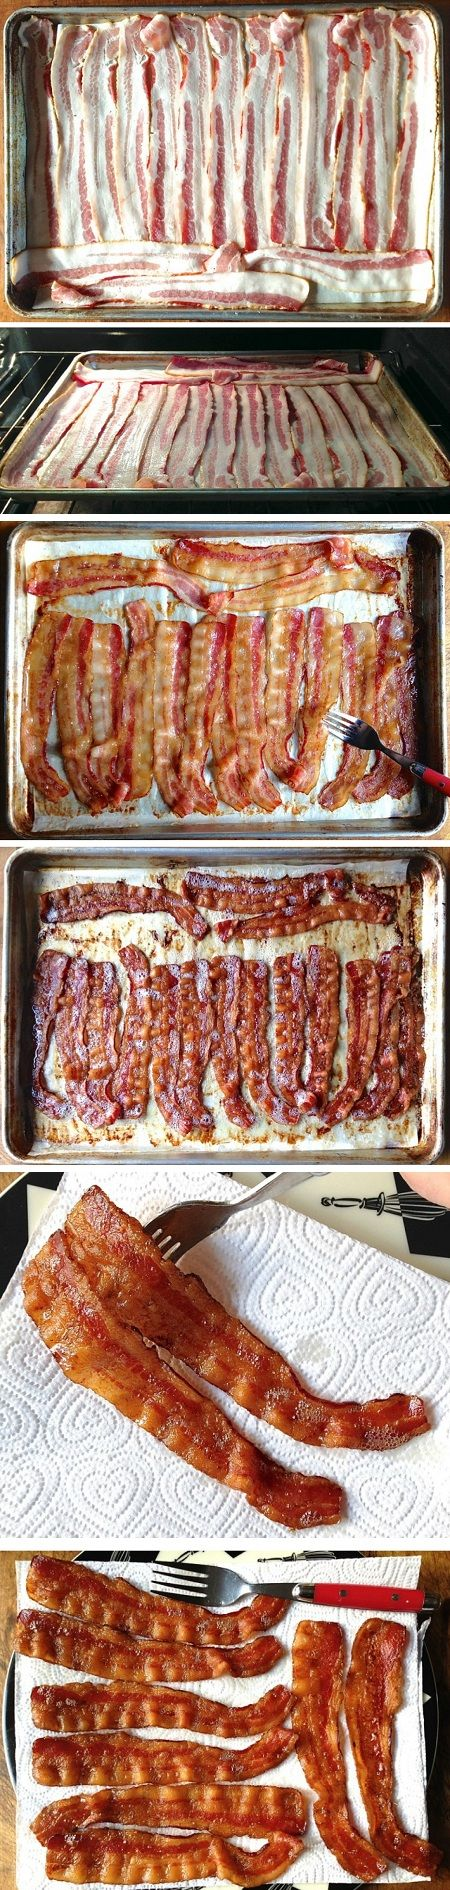 How to bake bacon - It's sooo much easier than frying and doesn't shrink as much!